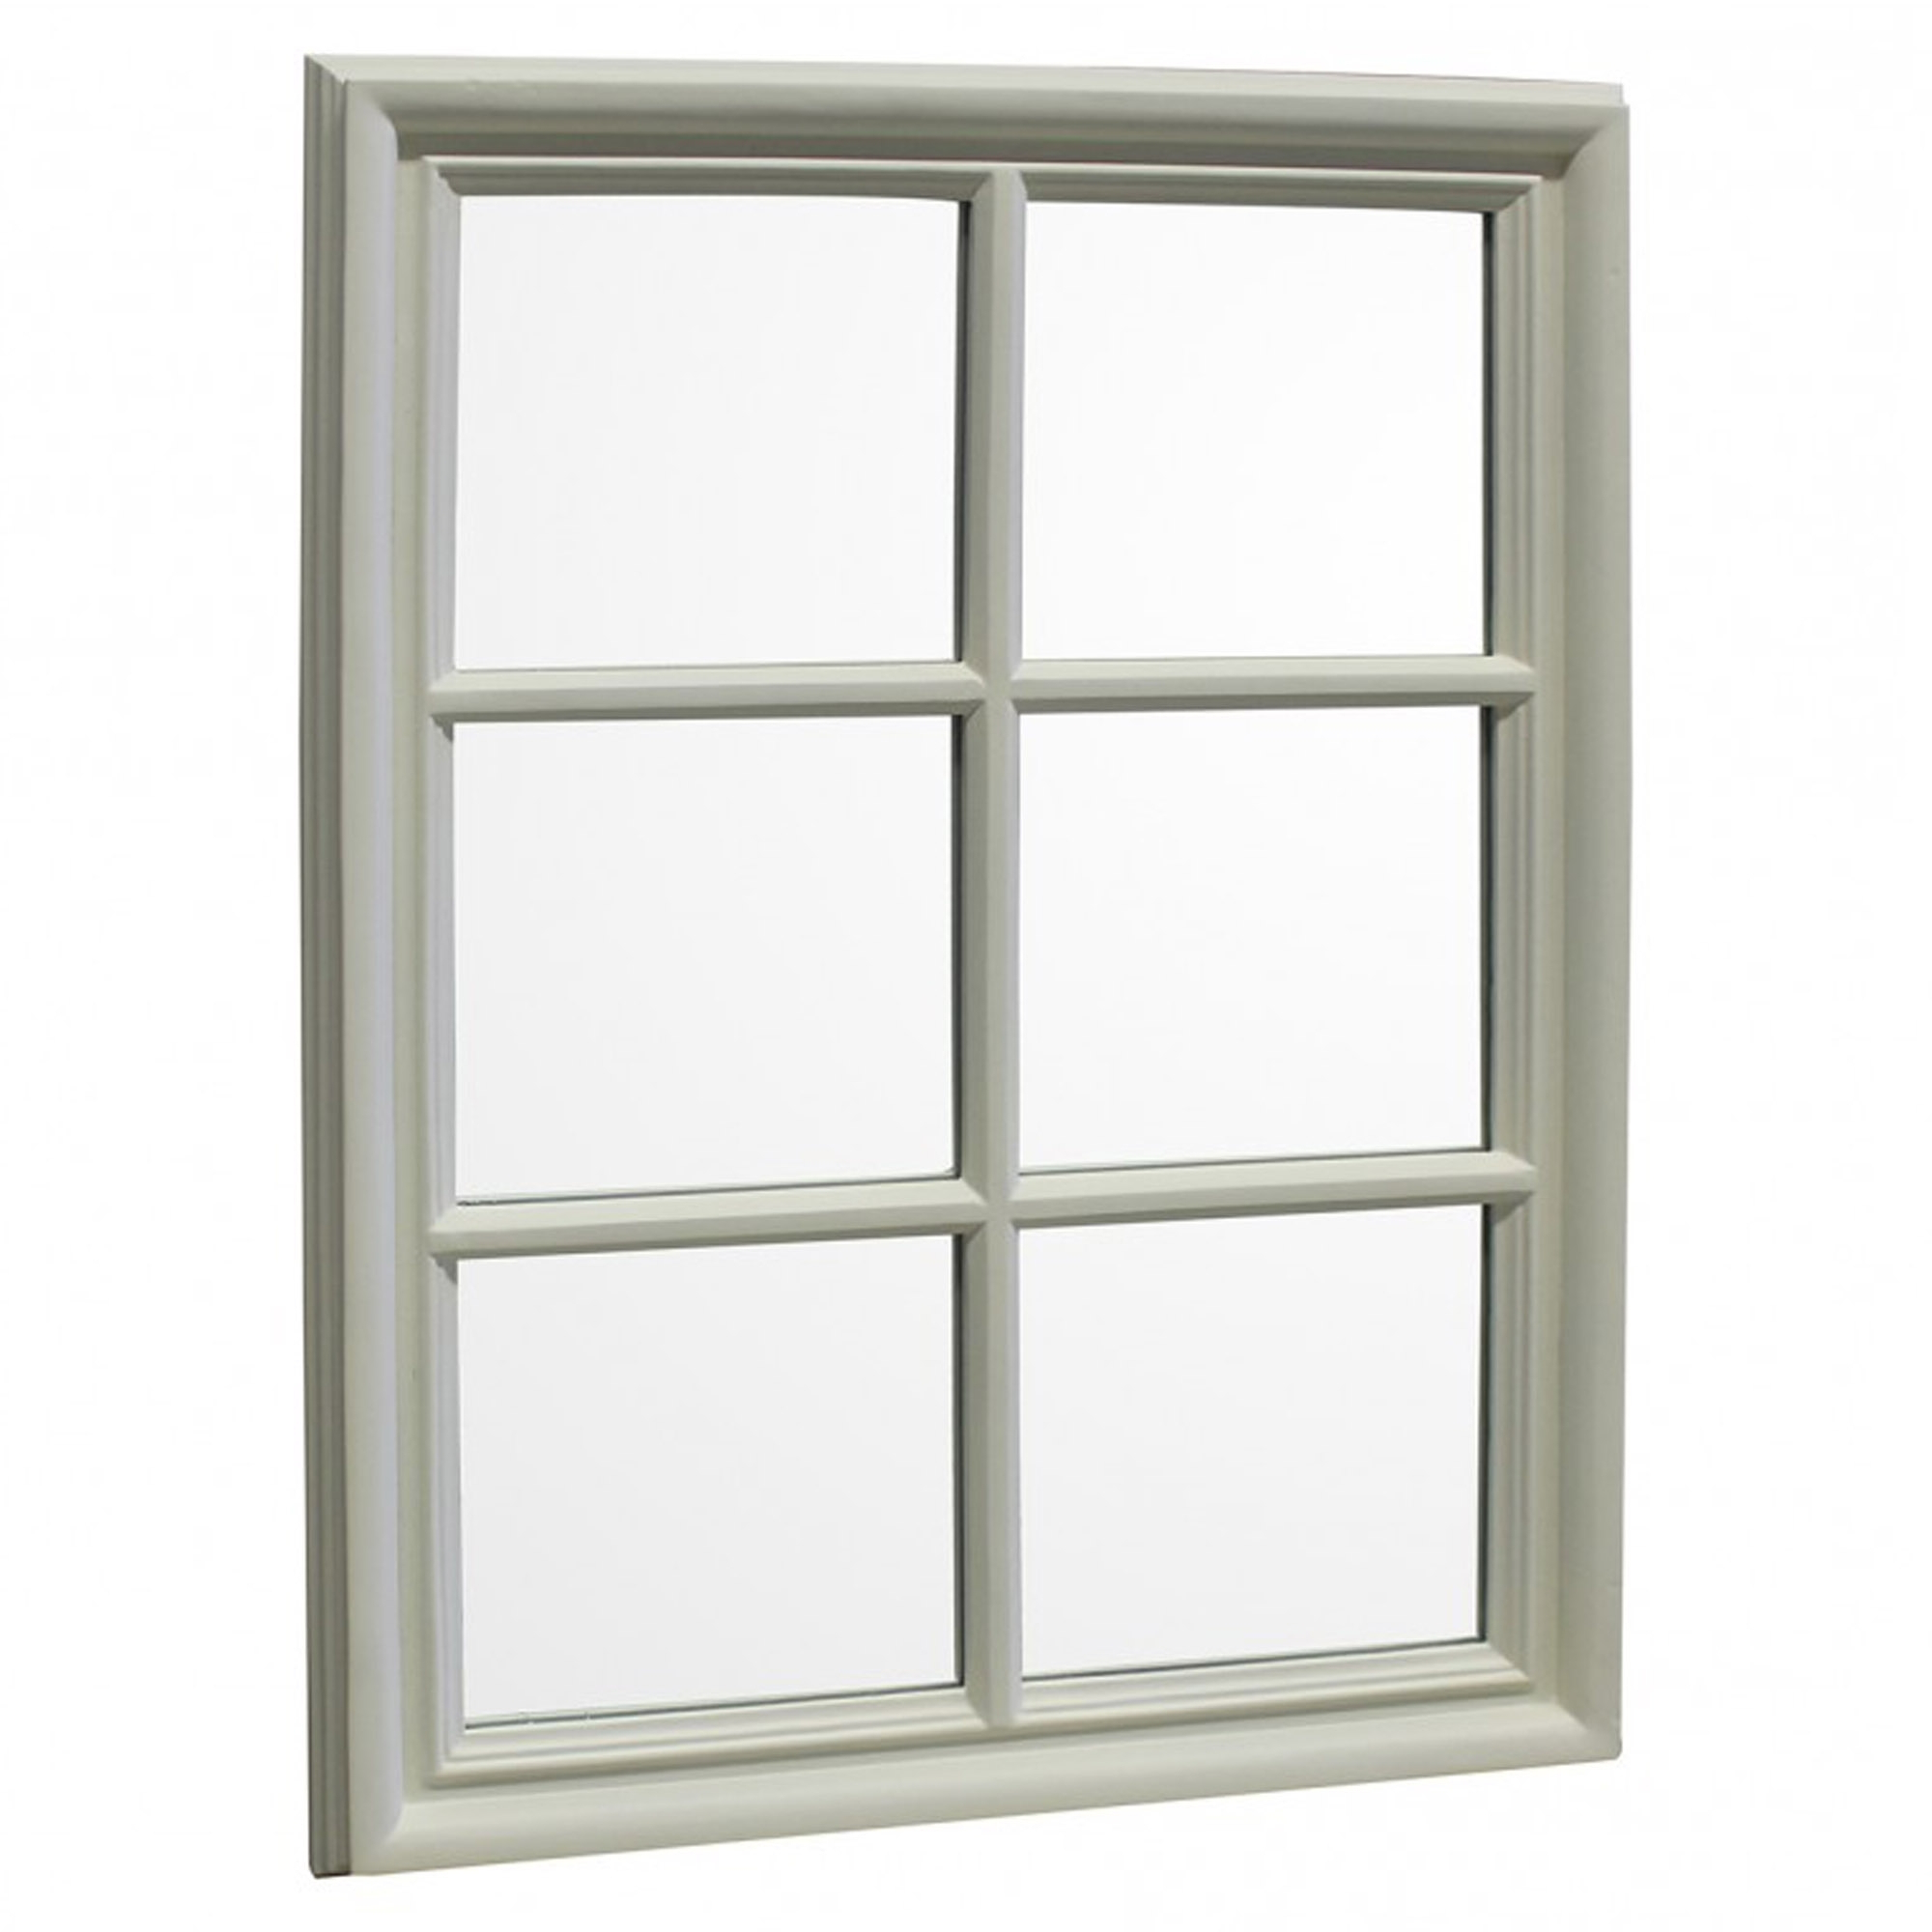 2019 Window Cream Wood Wall Mirrors For Cream Crawford Wall Mirror (View 13 of 20)